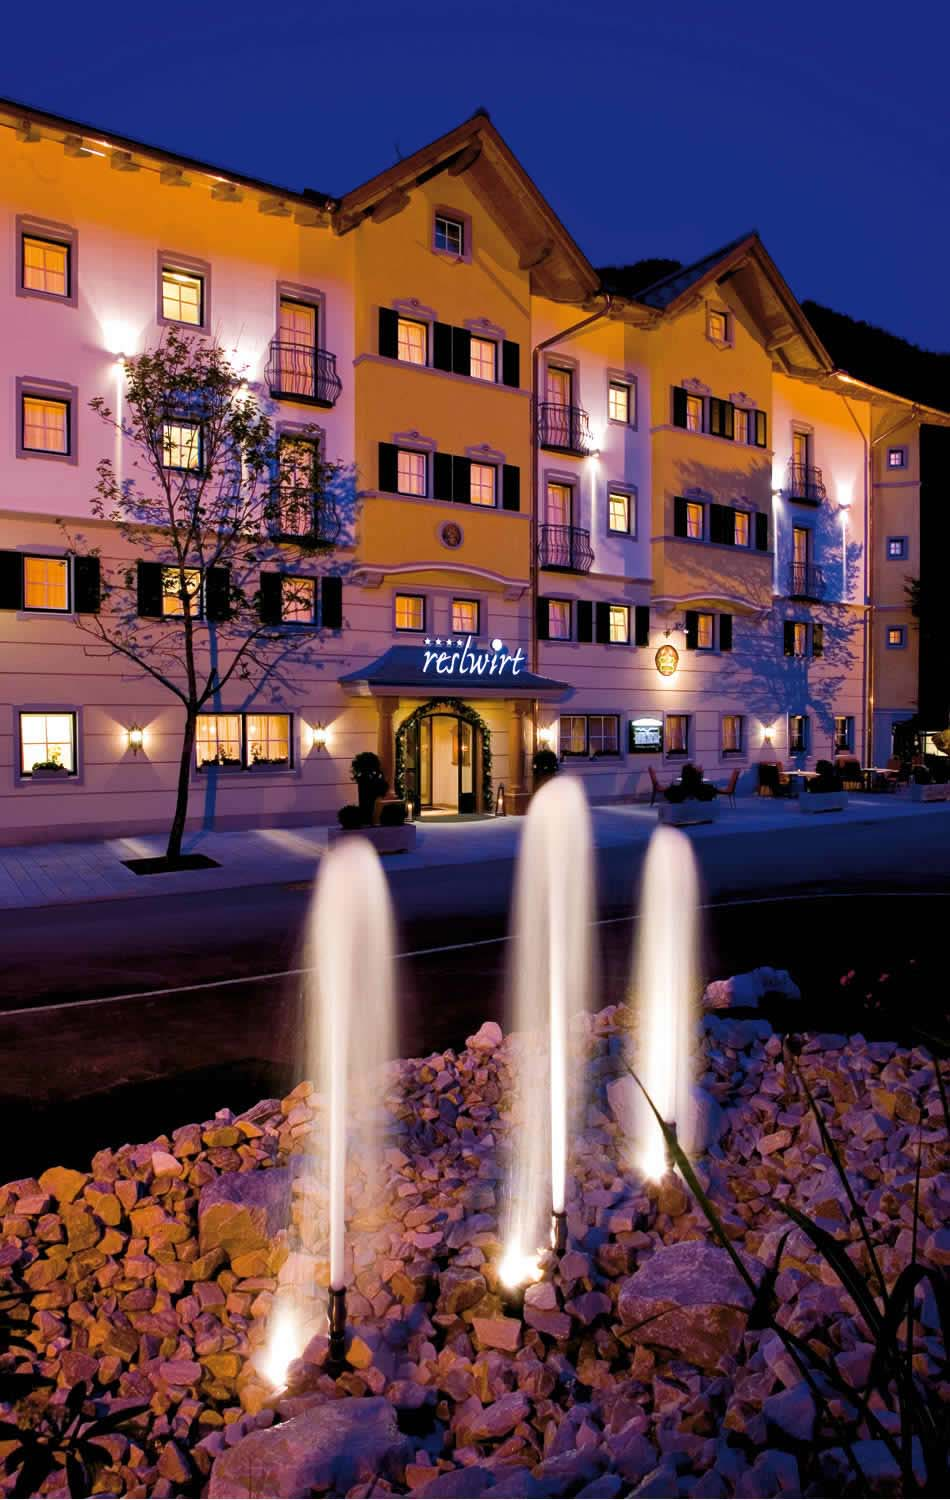 Hotel Reslwirt exterior view